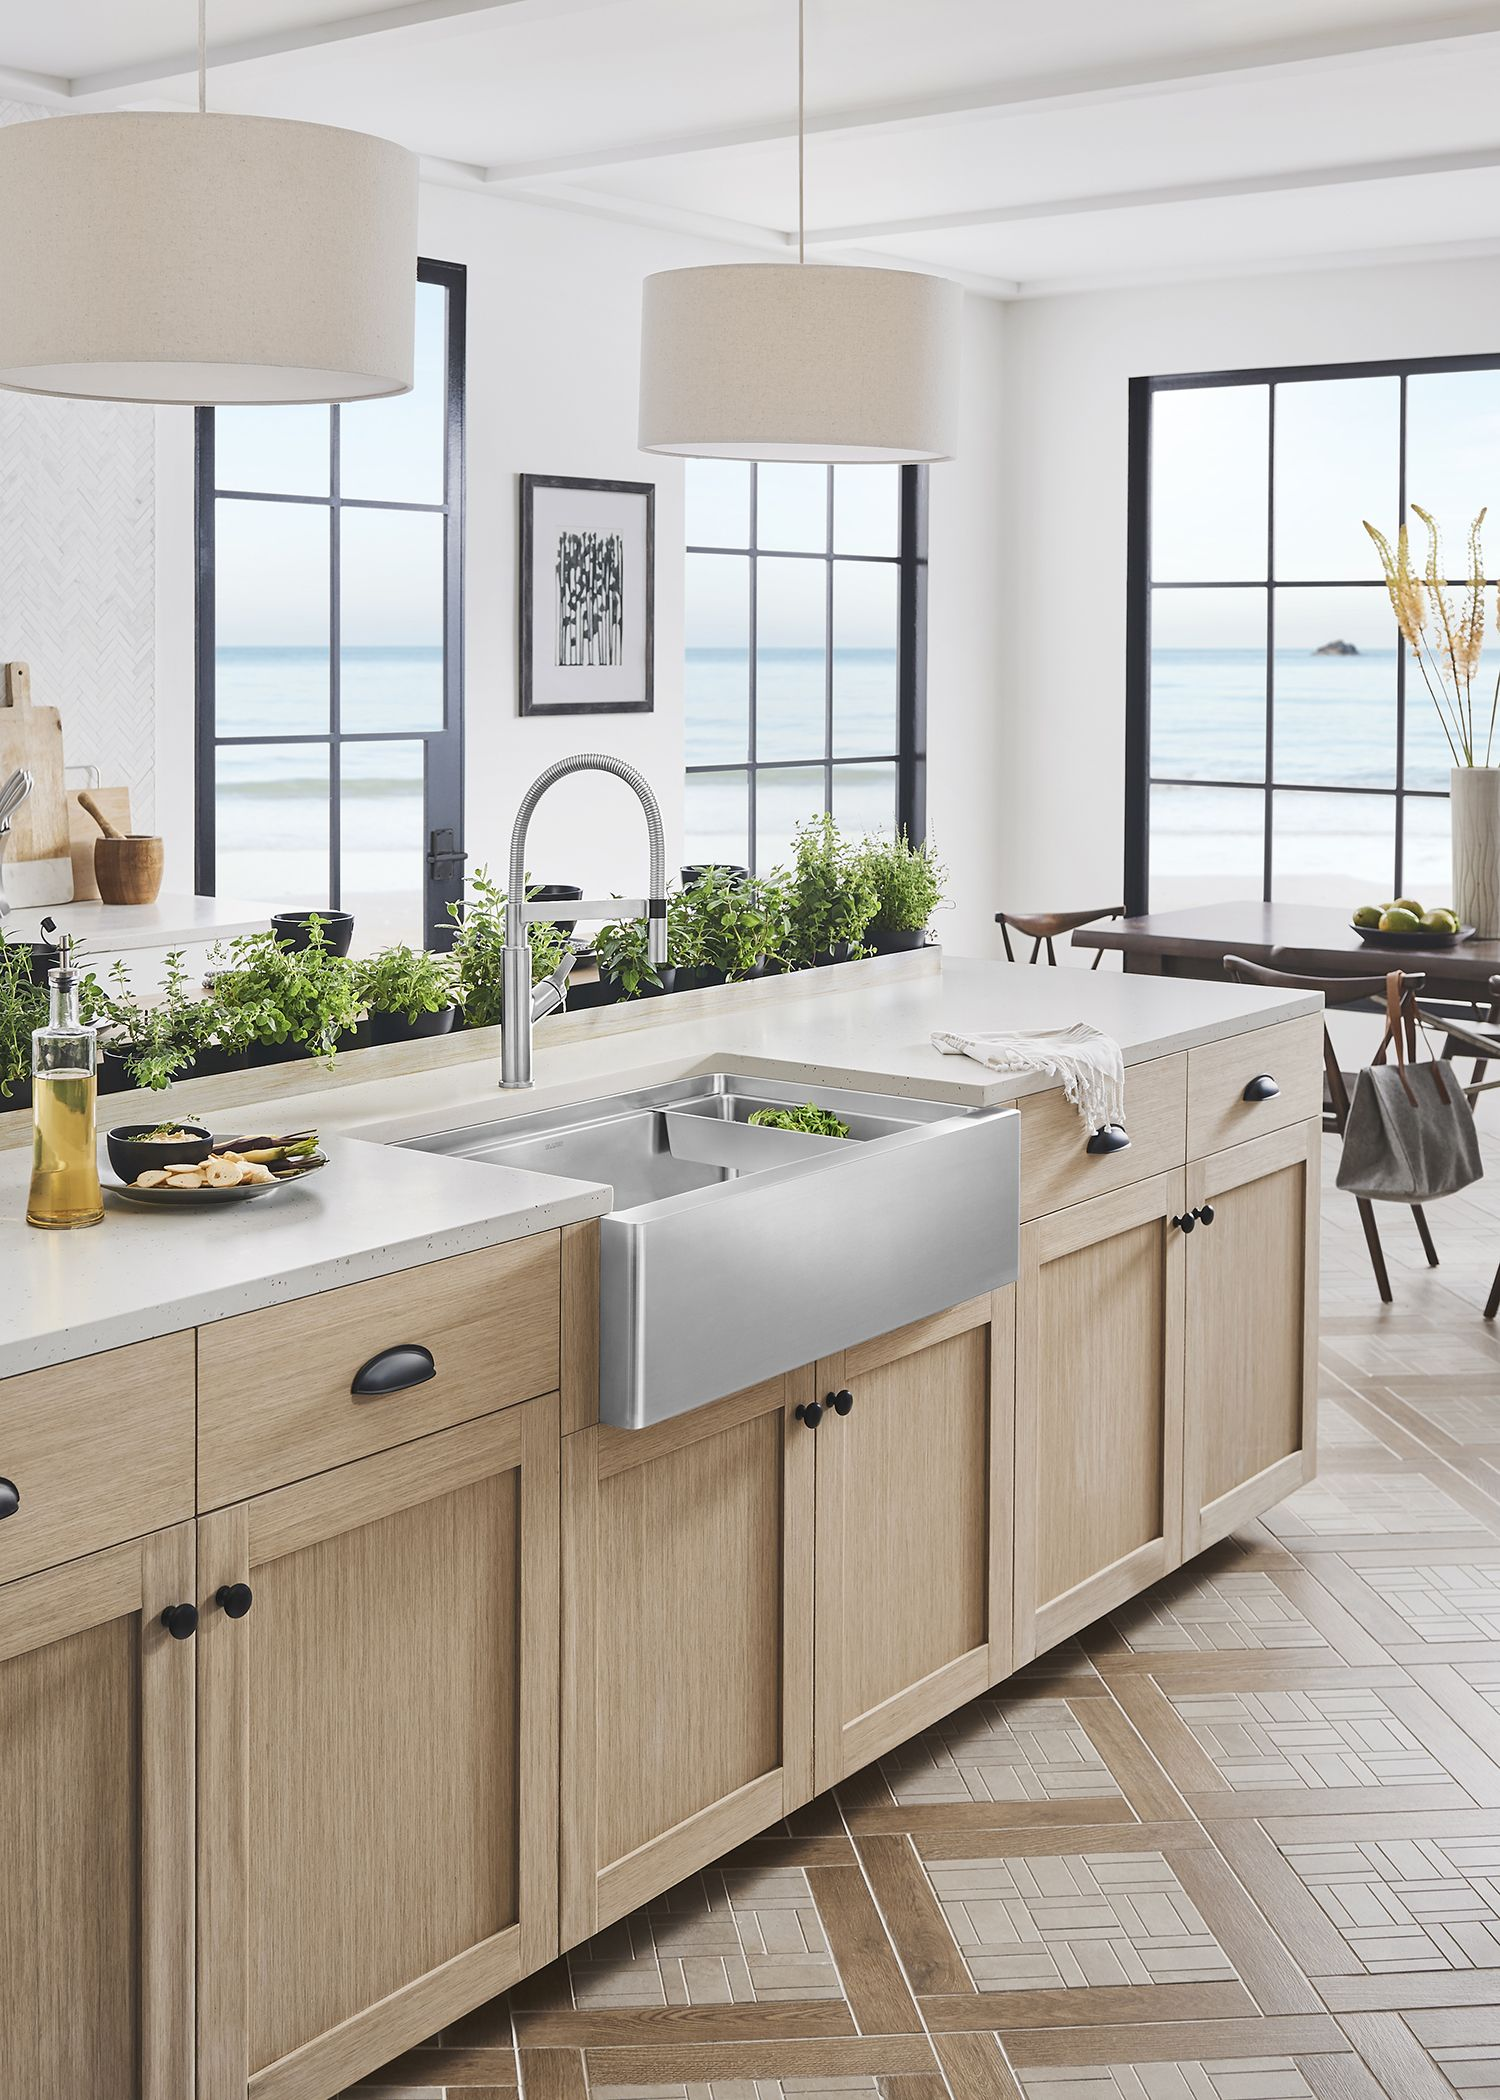 Stainless Steel Farmhouse Sink A Classic Pick For A